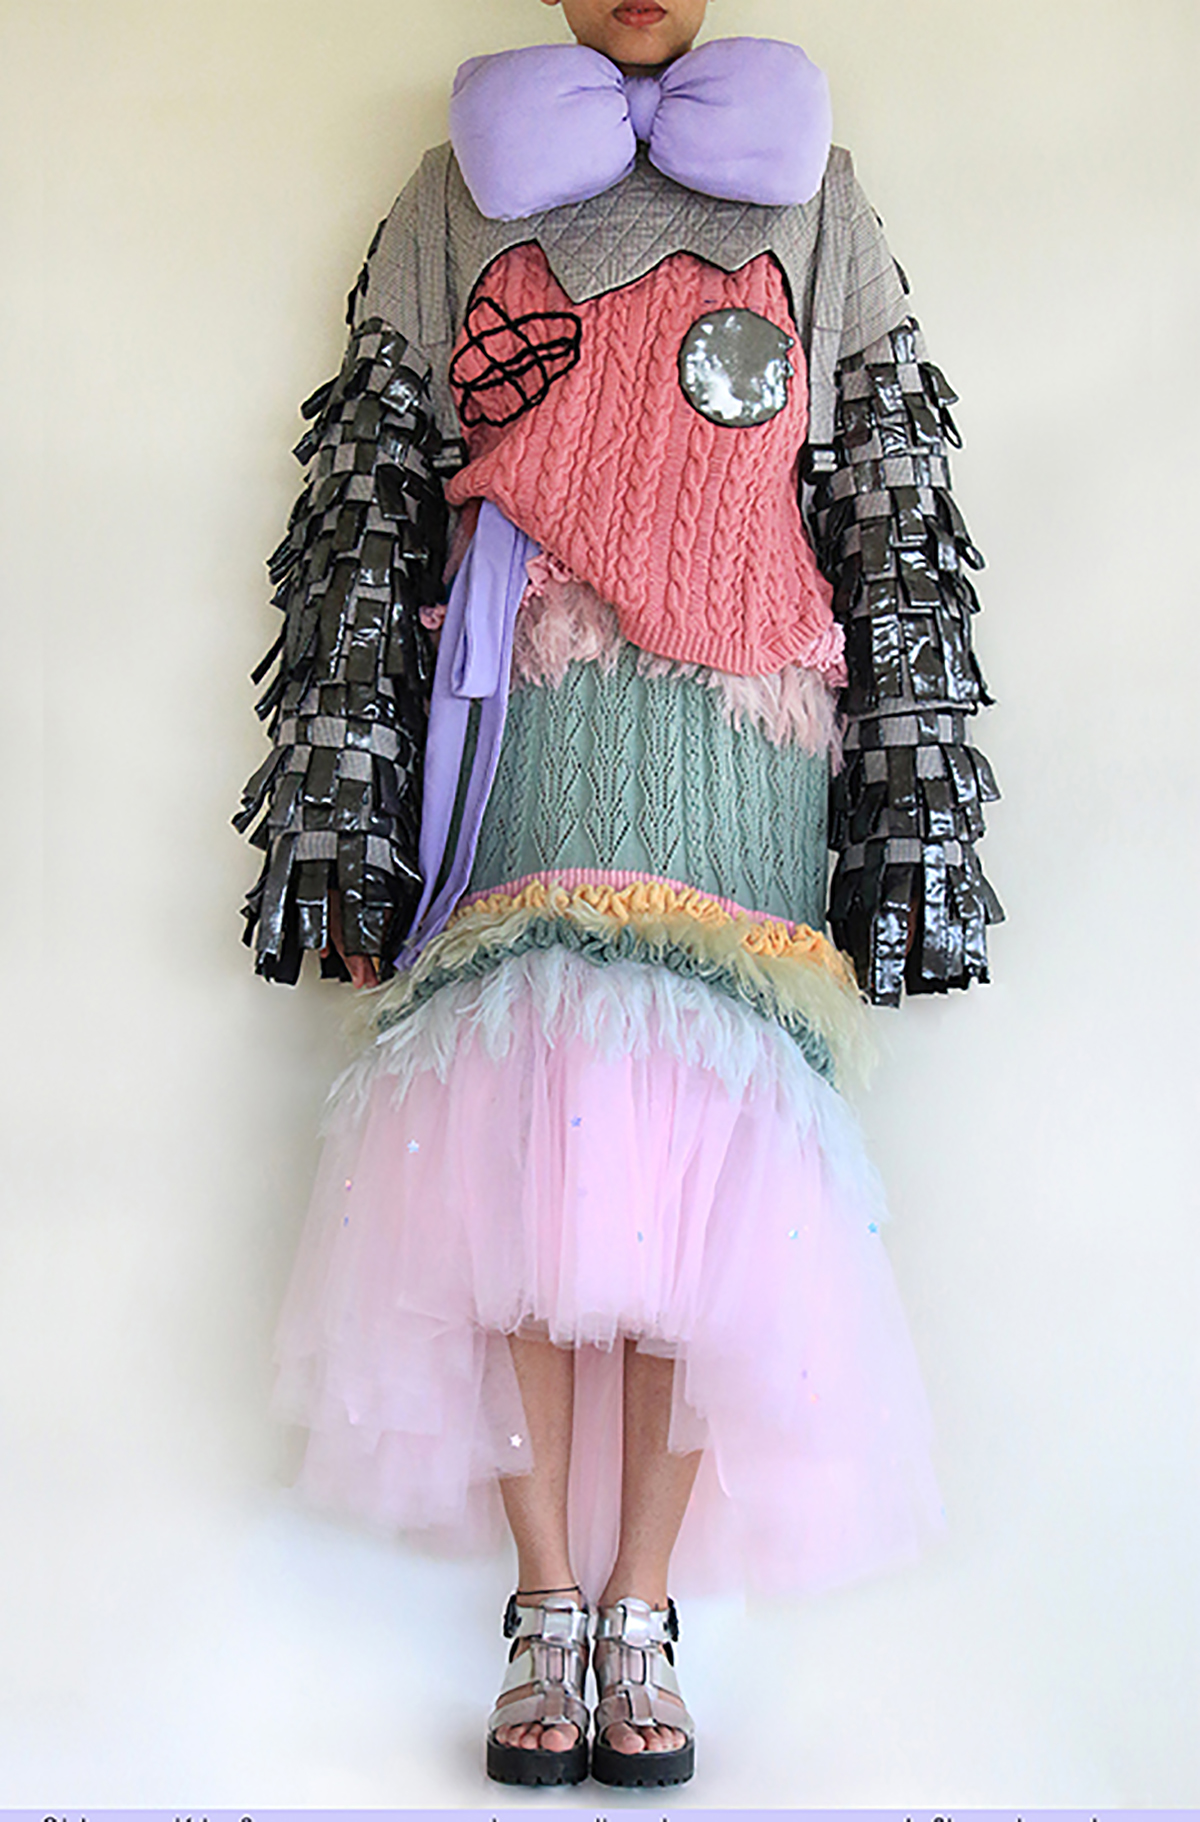 Old rose Kiki Face sweater w/ metallic sleeves over candyfloss knit dress